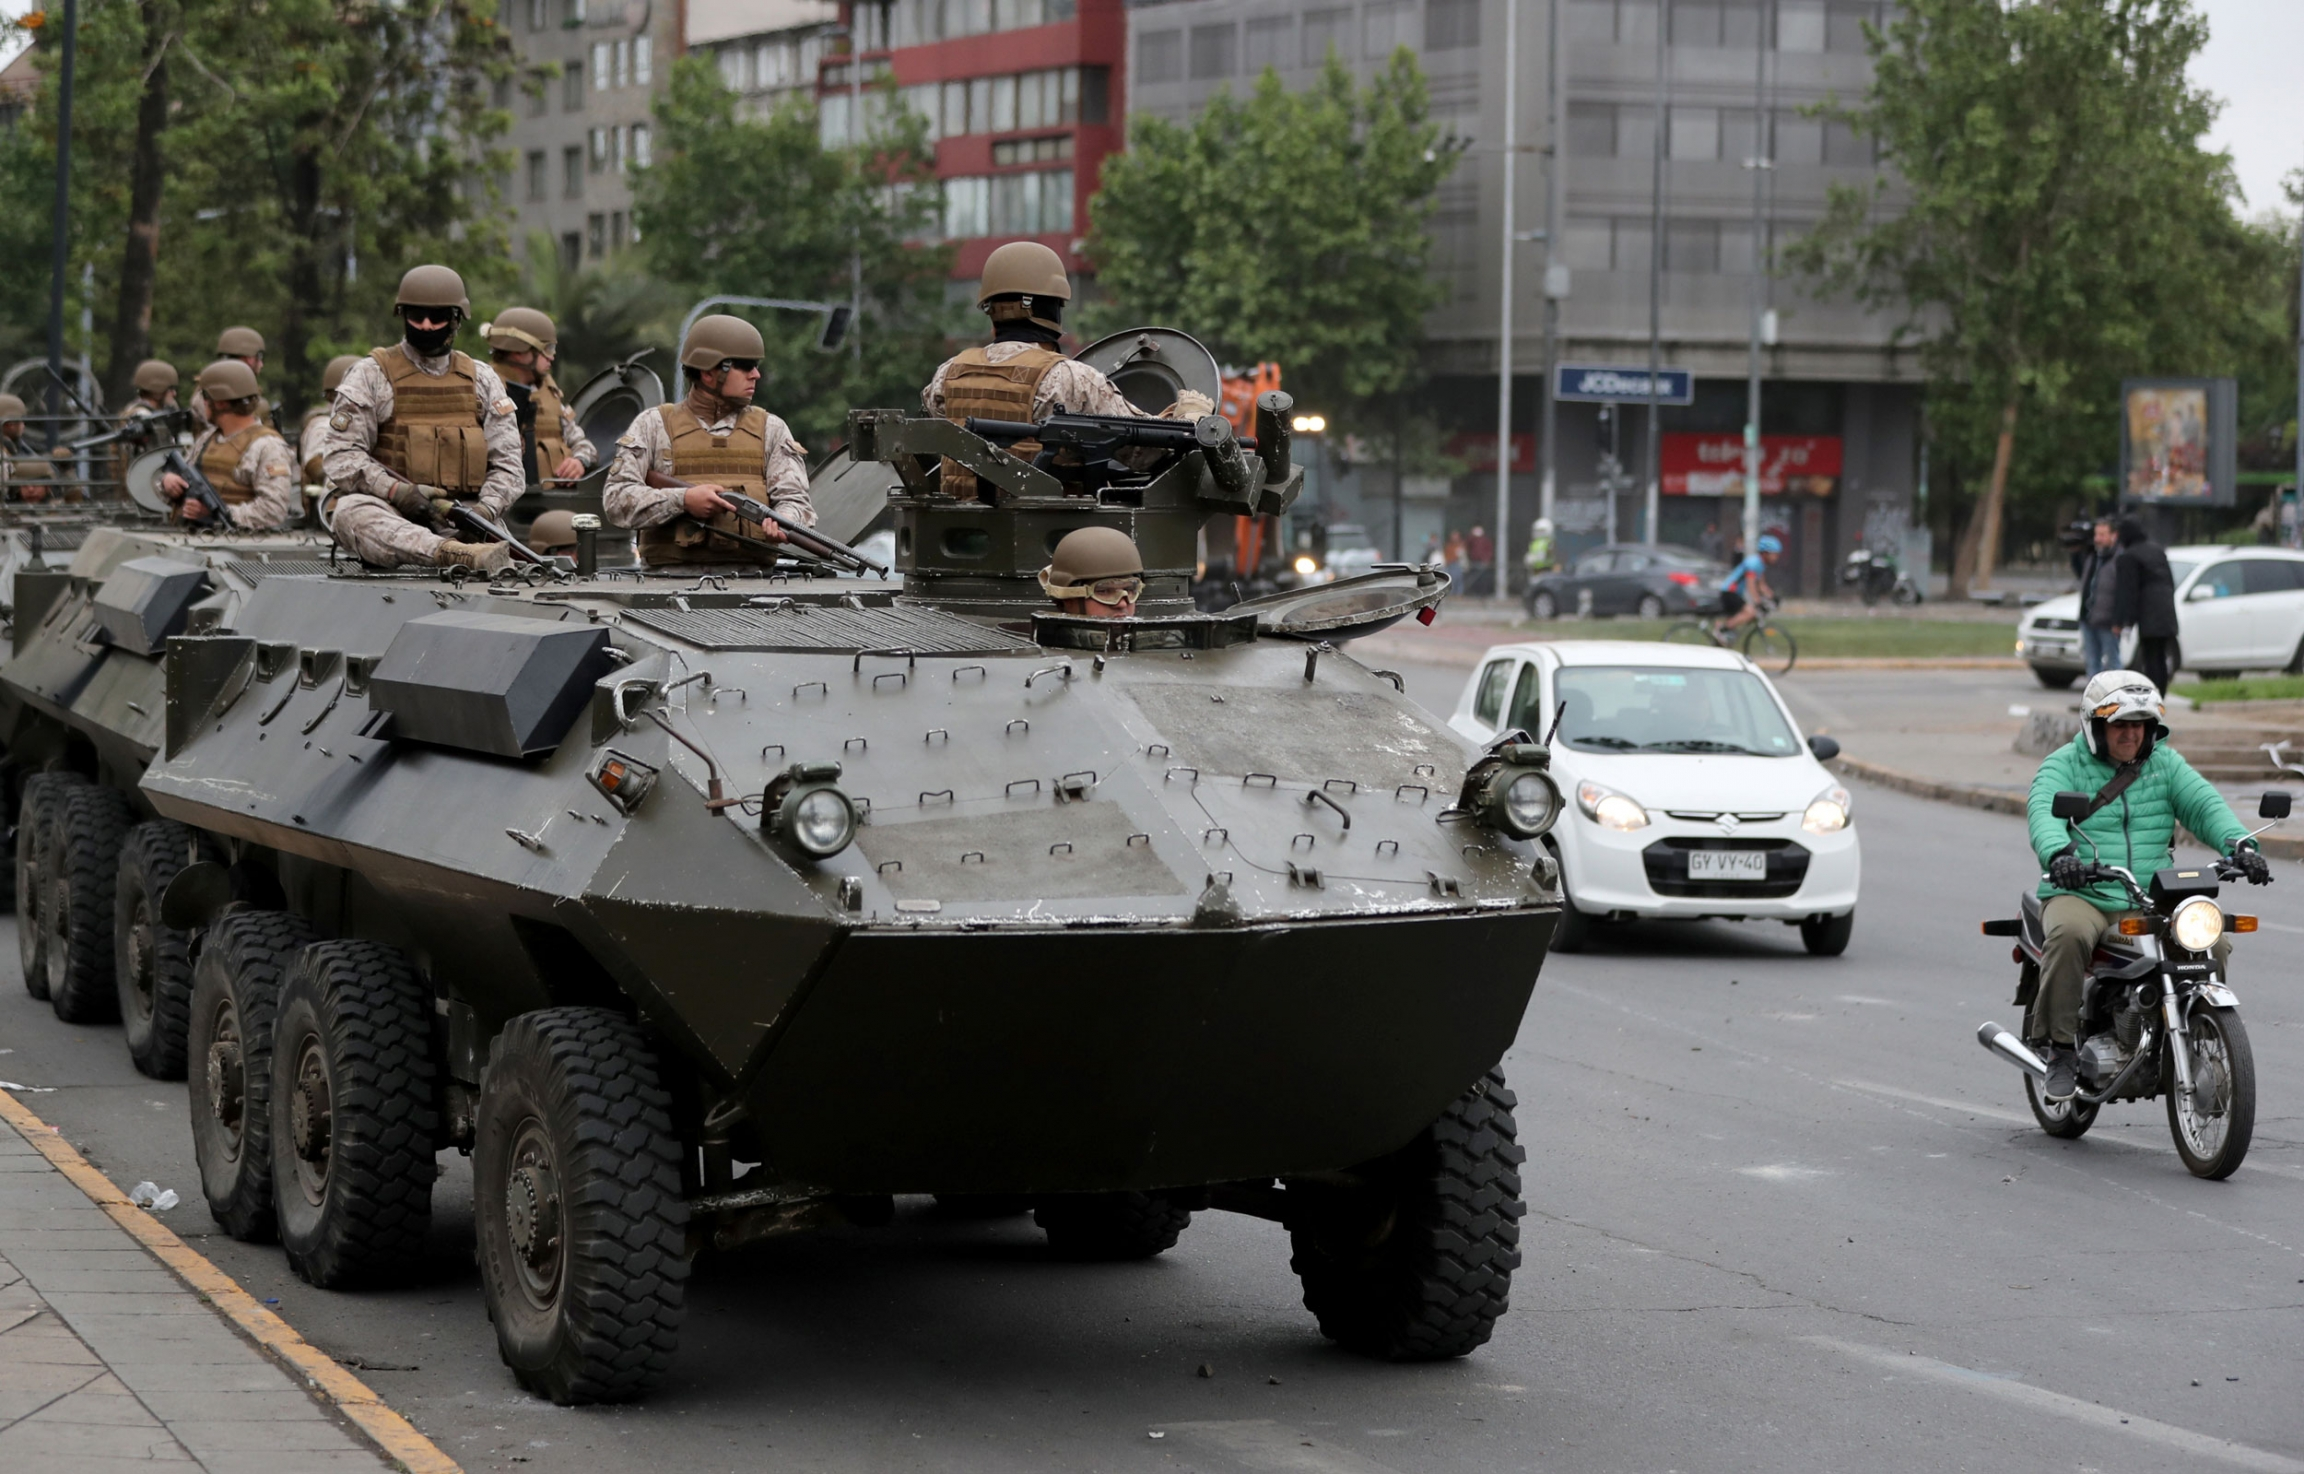 A line of armored transporter trucks are shown with armed soldiers riding on top and a man on a motorcycle passing by.